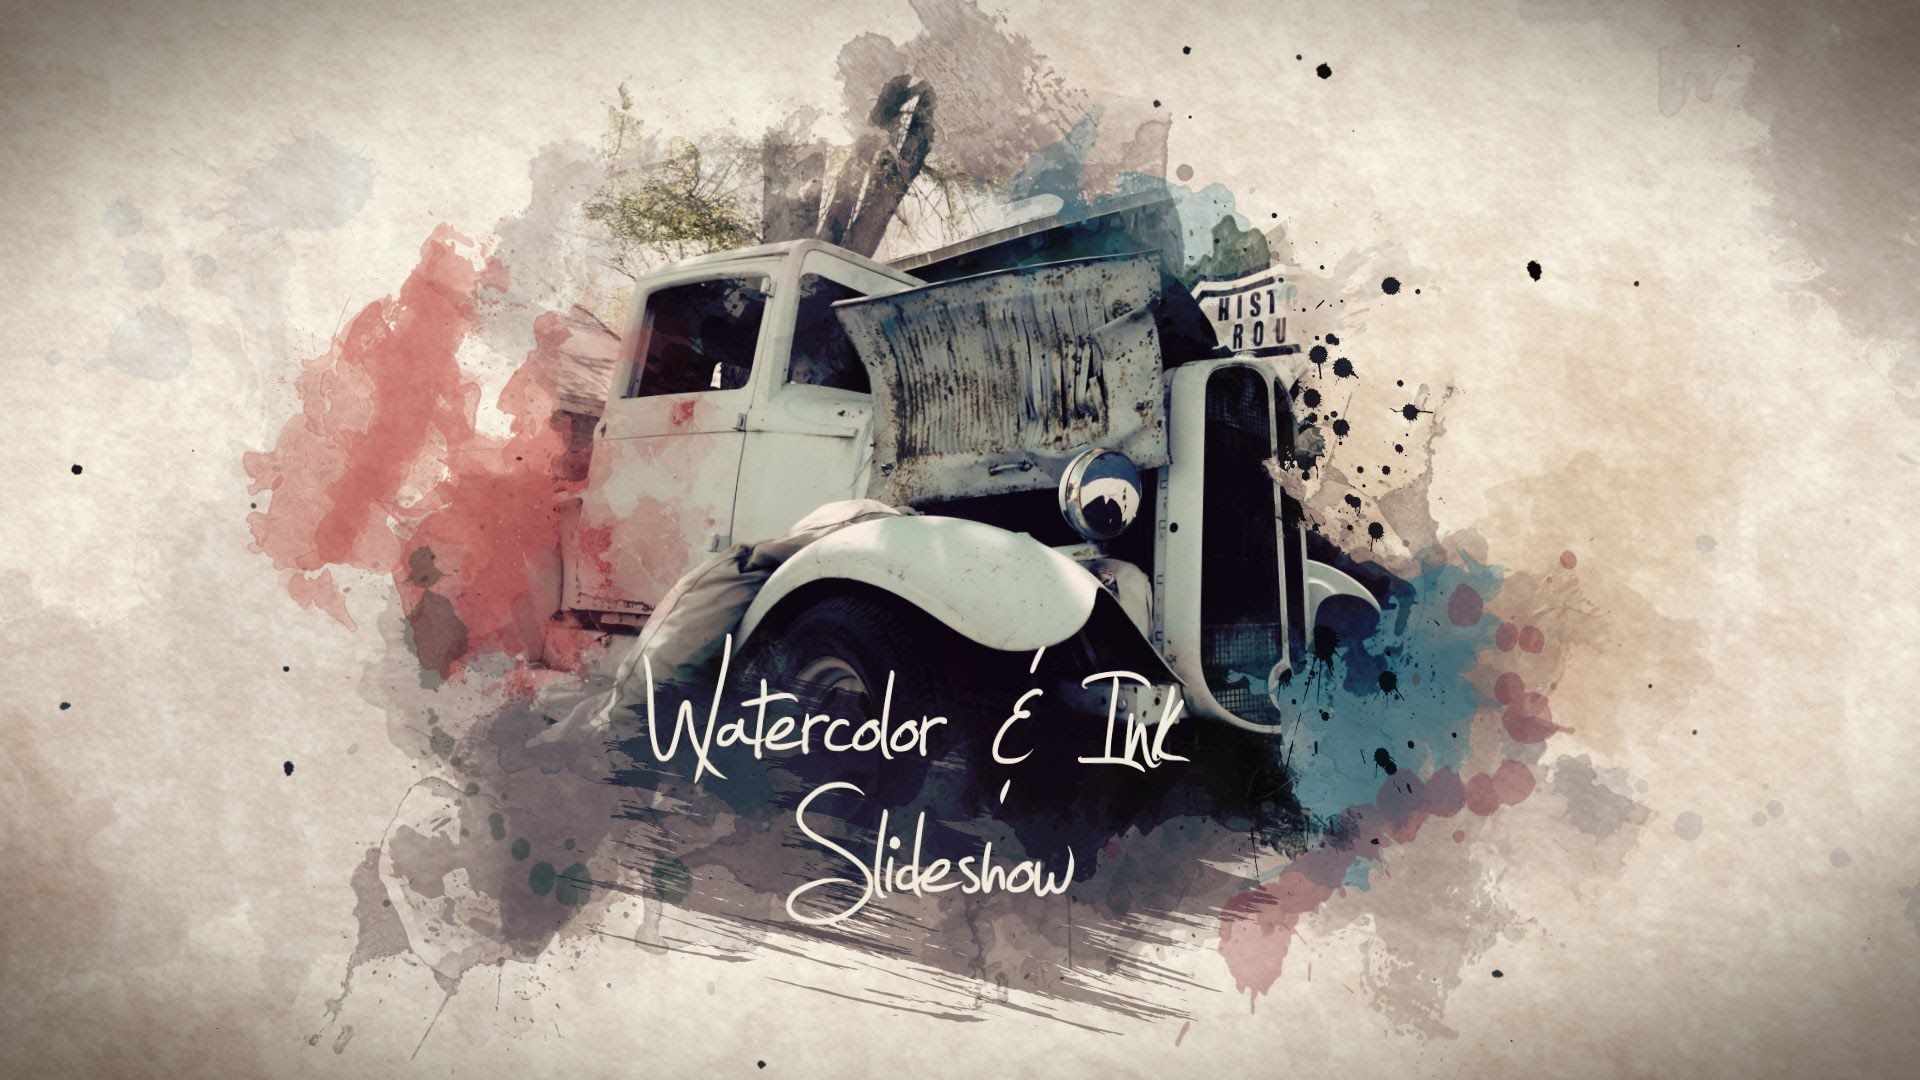 After Effects Template Watercolor Ink Slideshow Fantasy Art - Awesome slideshow after effects scheme